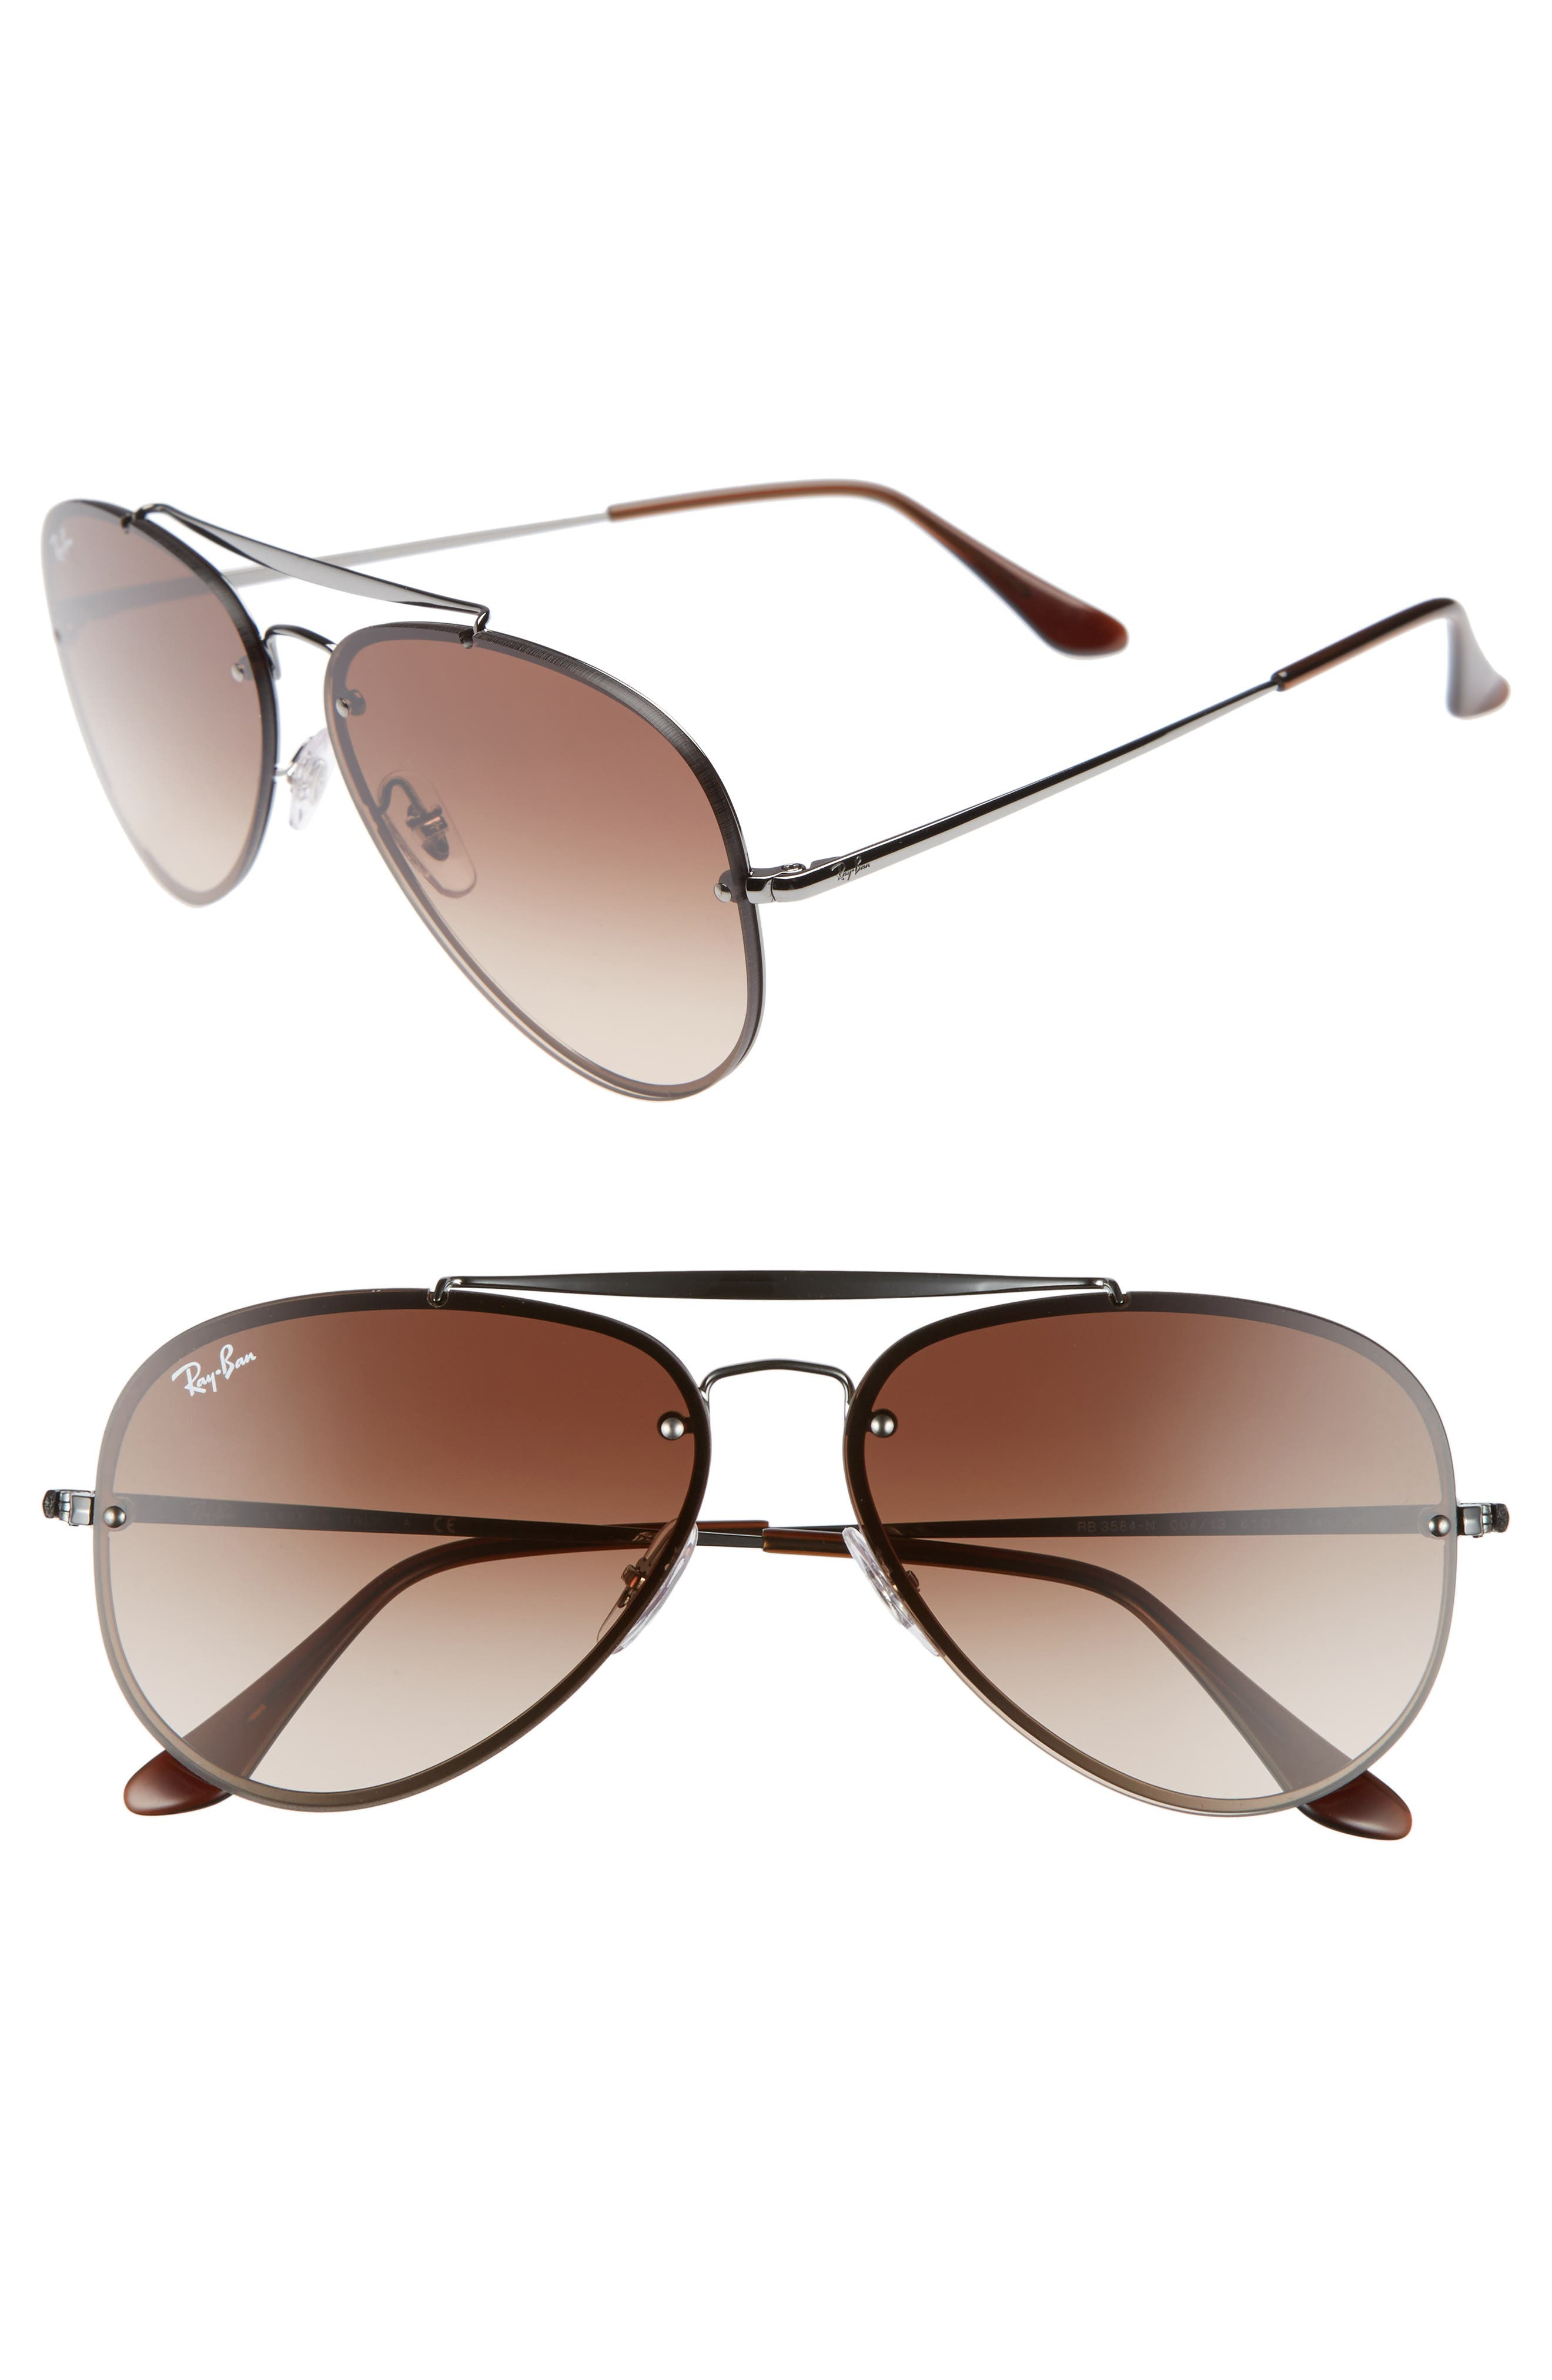 Alternate Image 1 Selected - Ray-Ban Blaze 61mm Aviator Sunglasses